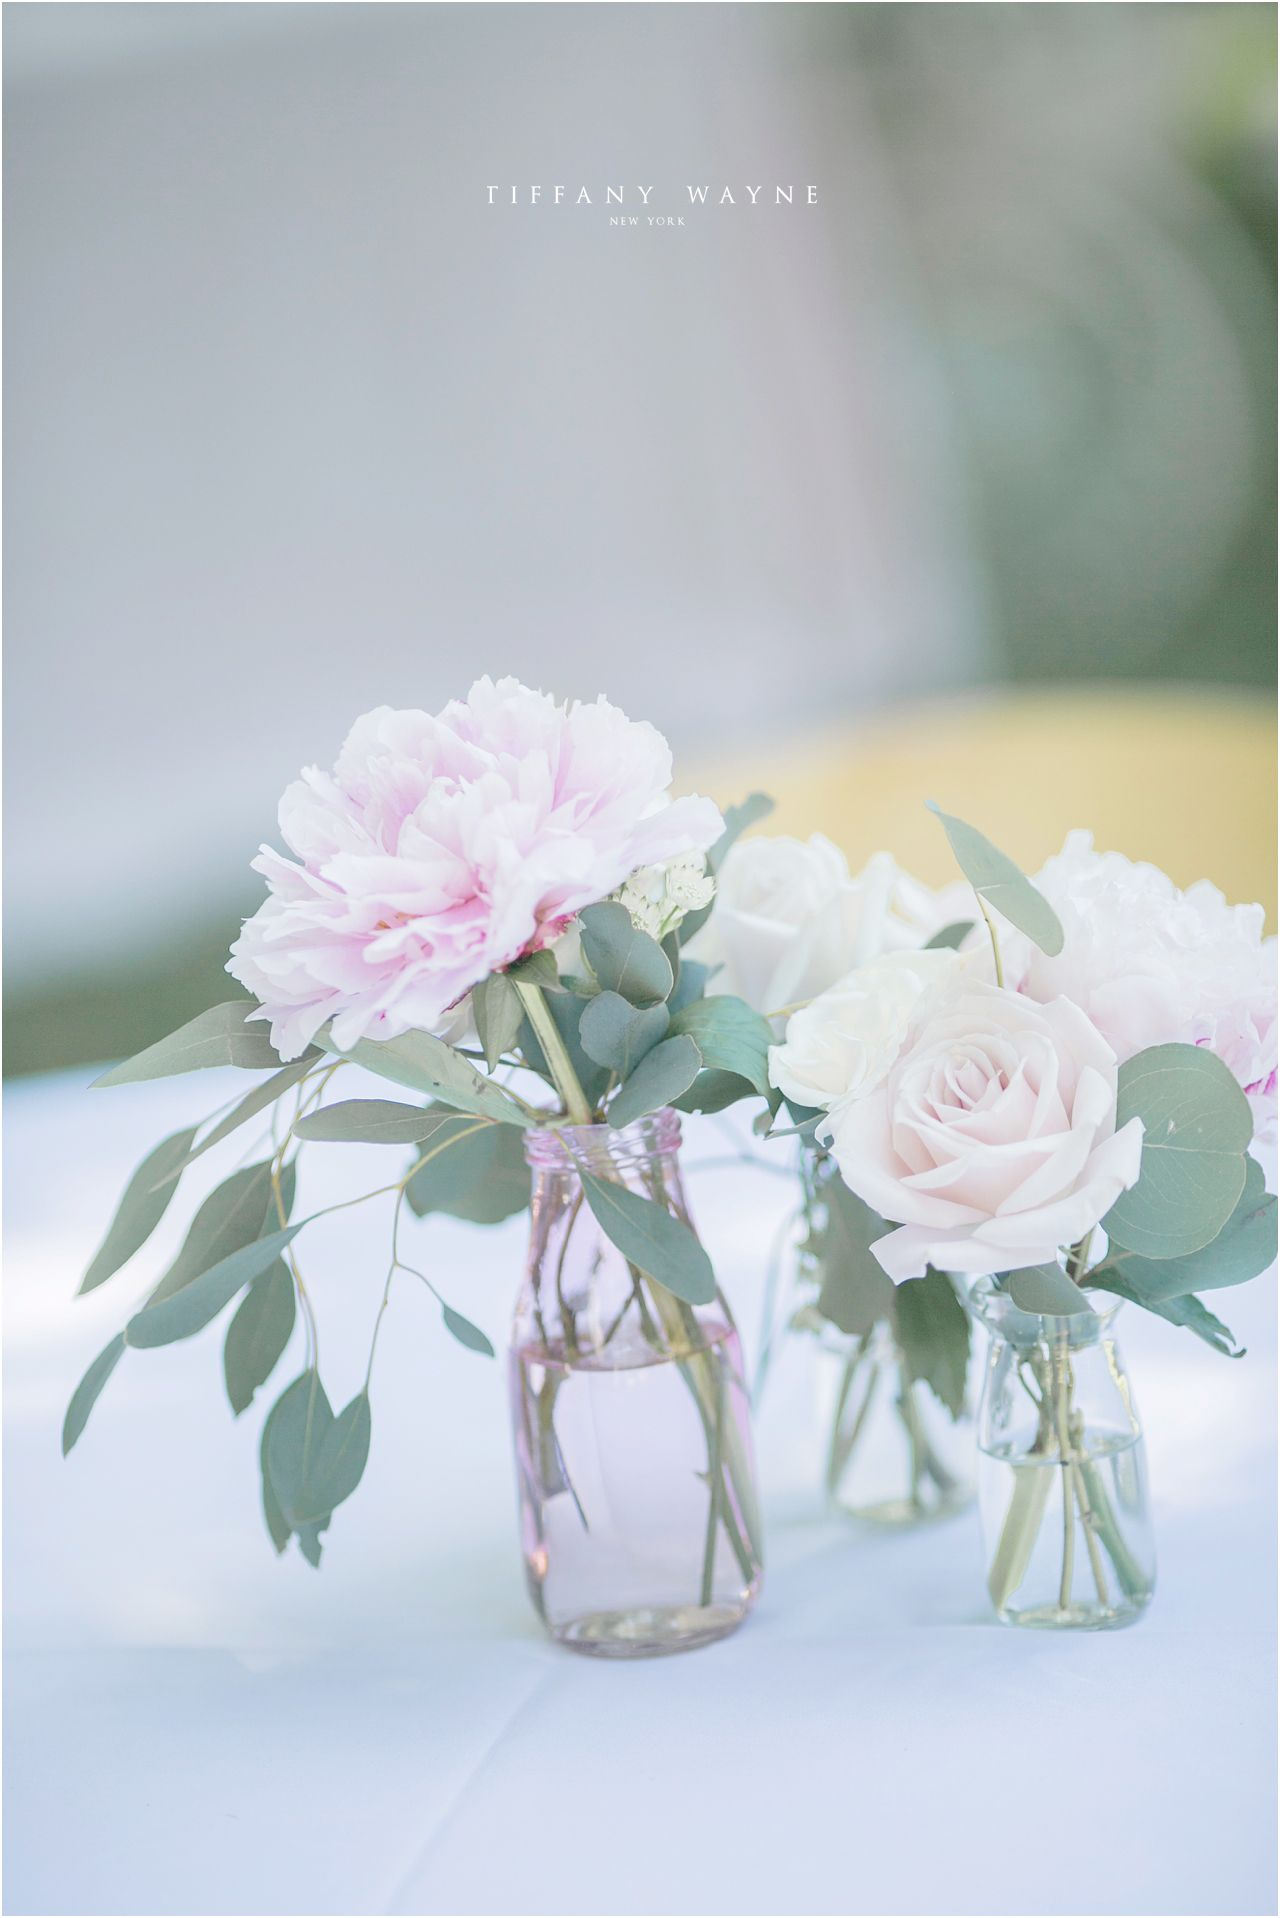 Light Pink Wedding Flowers Light Pink Flowers With Eucalyptus Leaves Flowers With Eu Wedding Flower Decorations Peonies Wedding Table Wedding Table Flowers